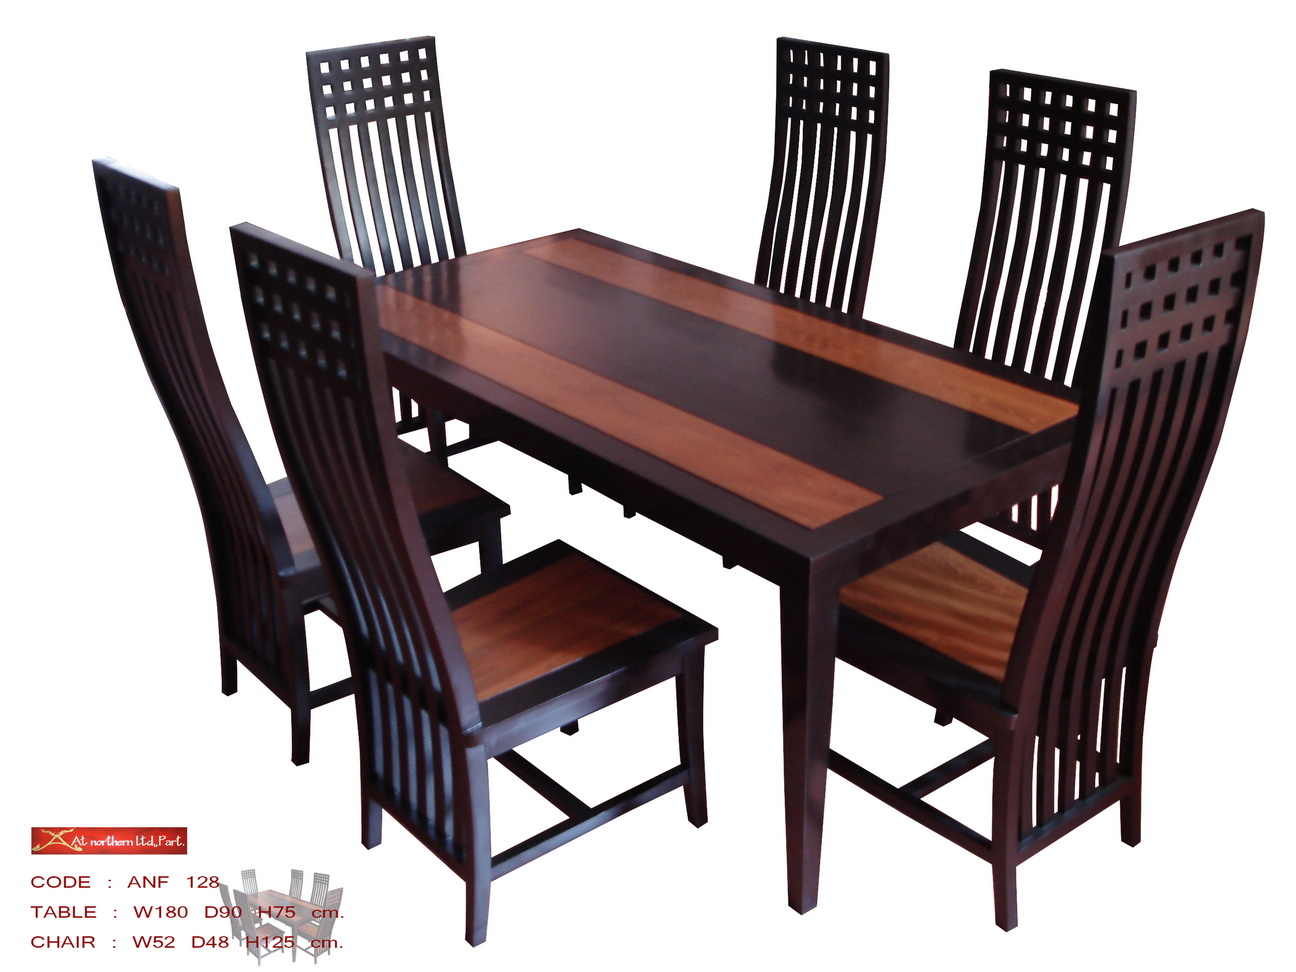 Teak wood furniture furniture design ideas for Furniture design thailand